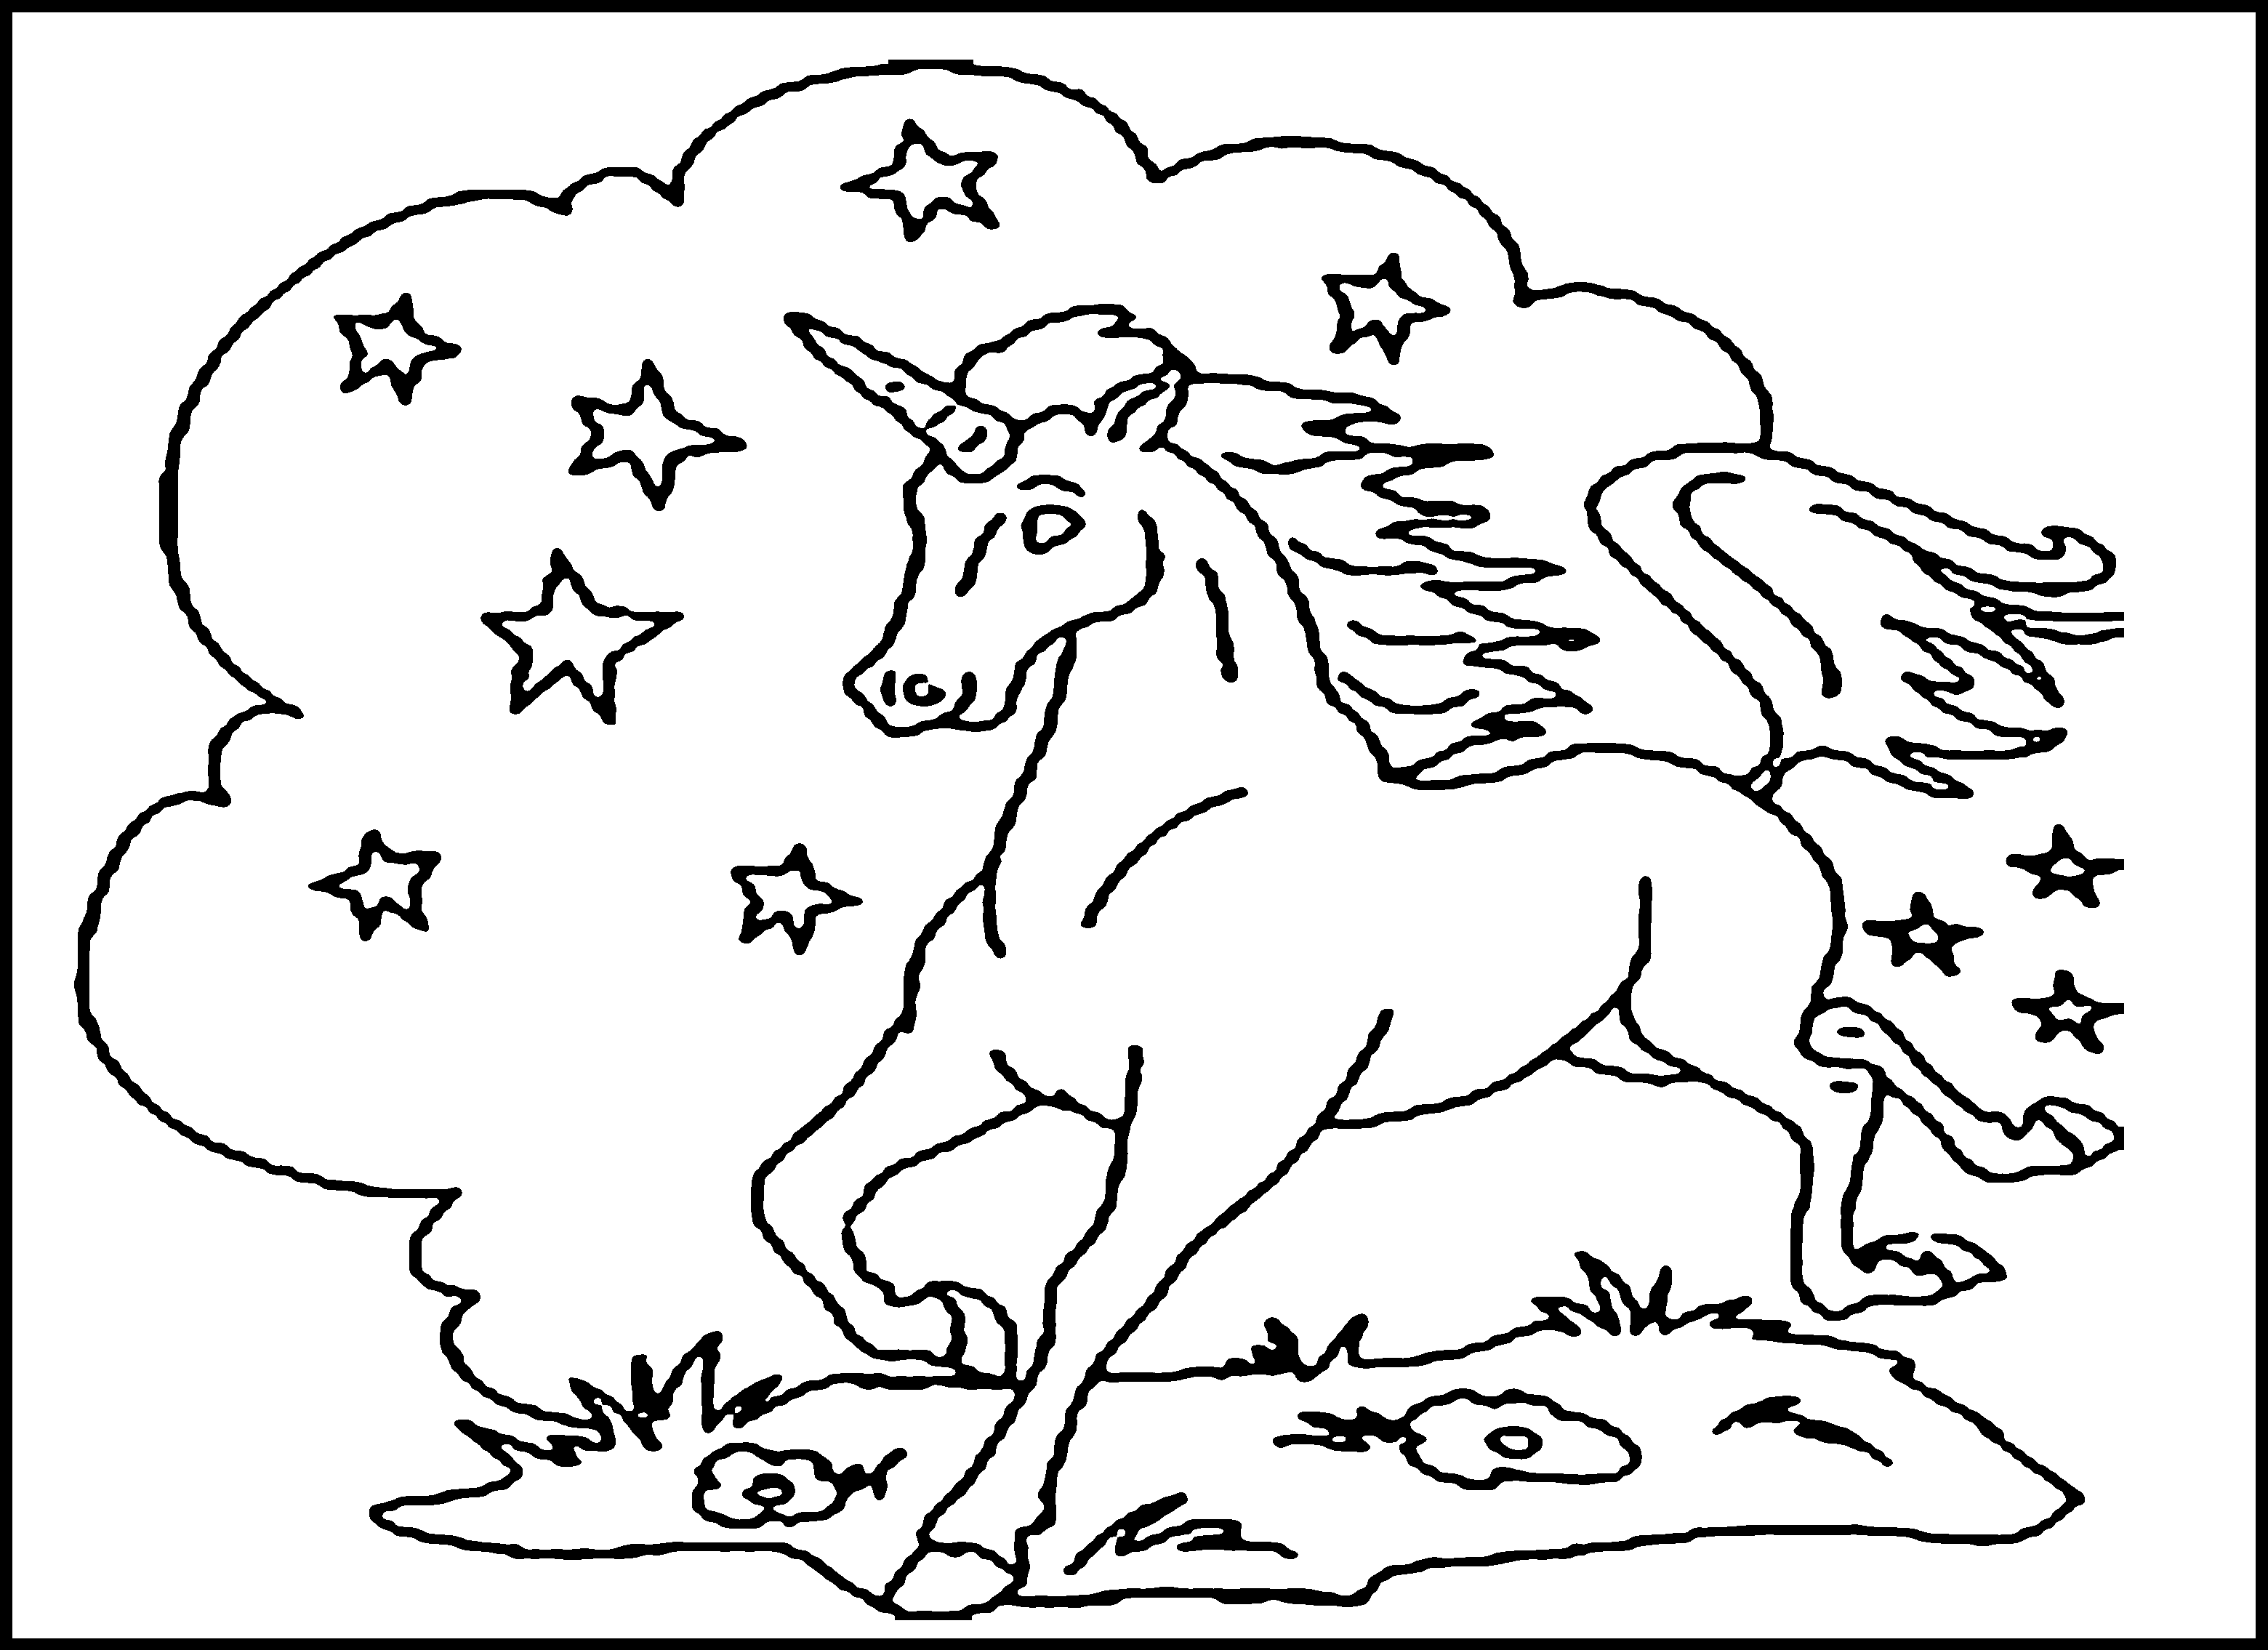 unicorn printable coloring pages - Kids Colouring Picture